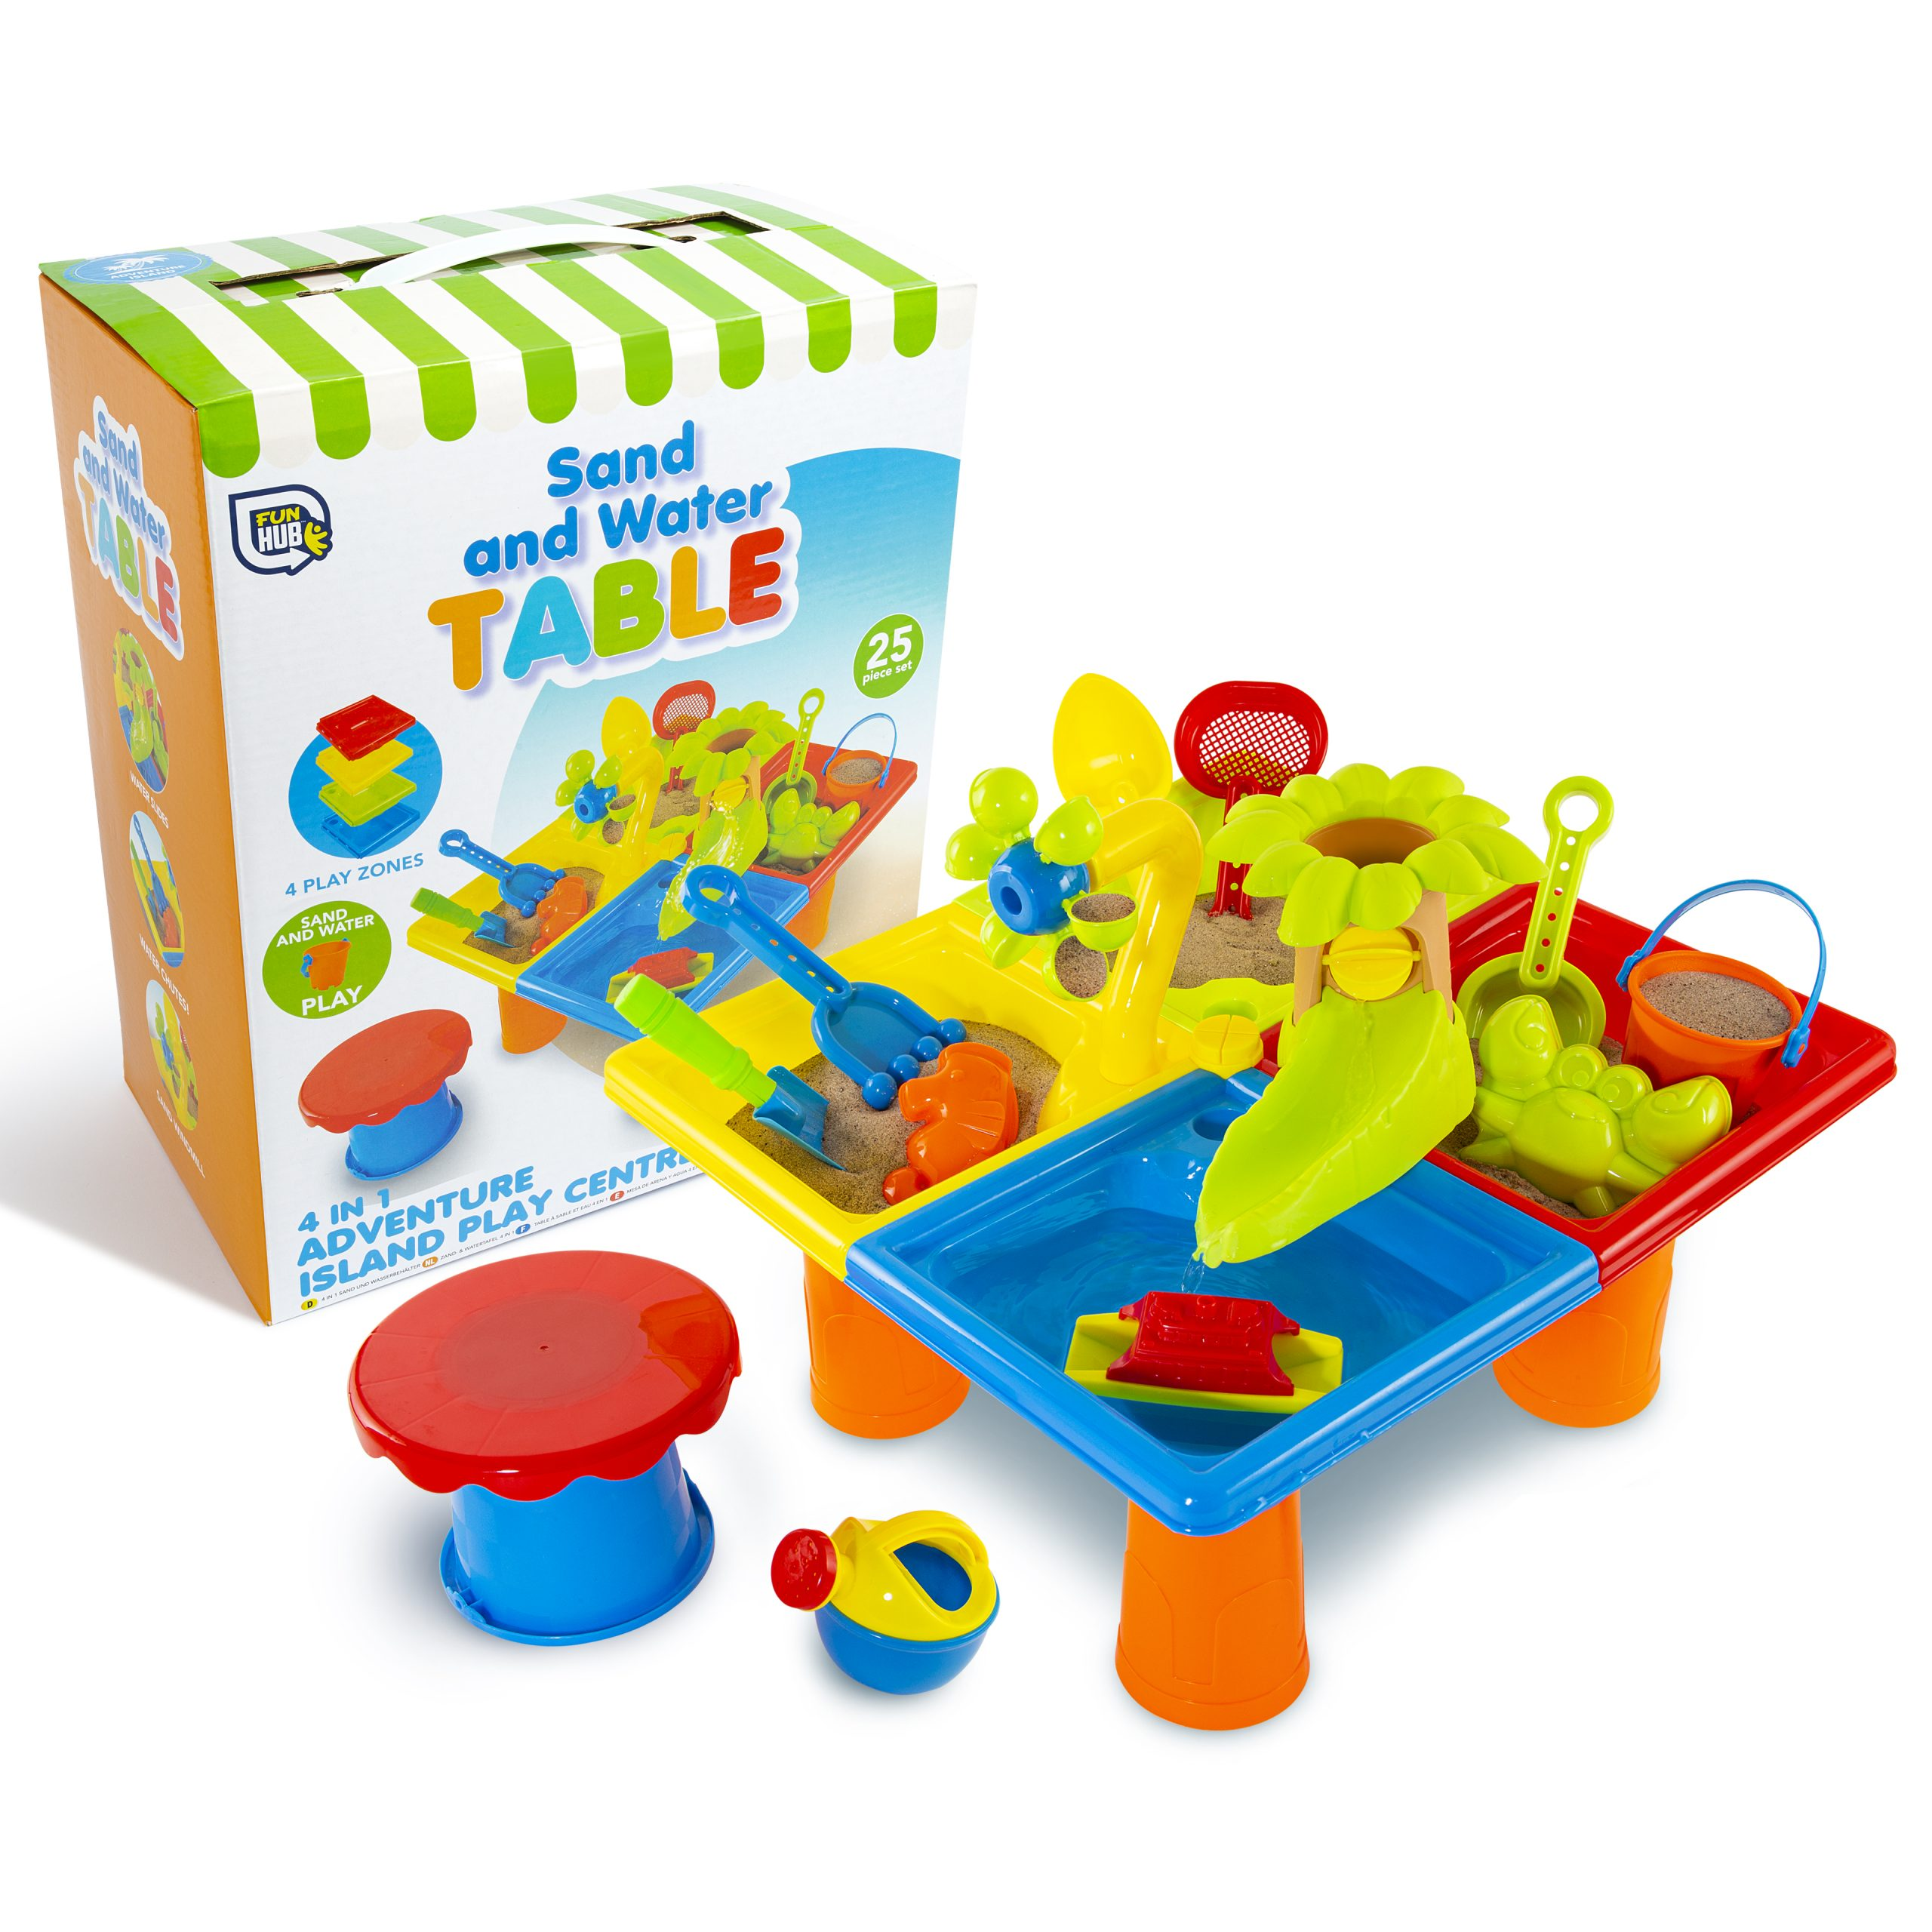 Sand and water table 25 piece